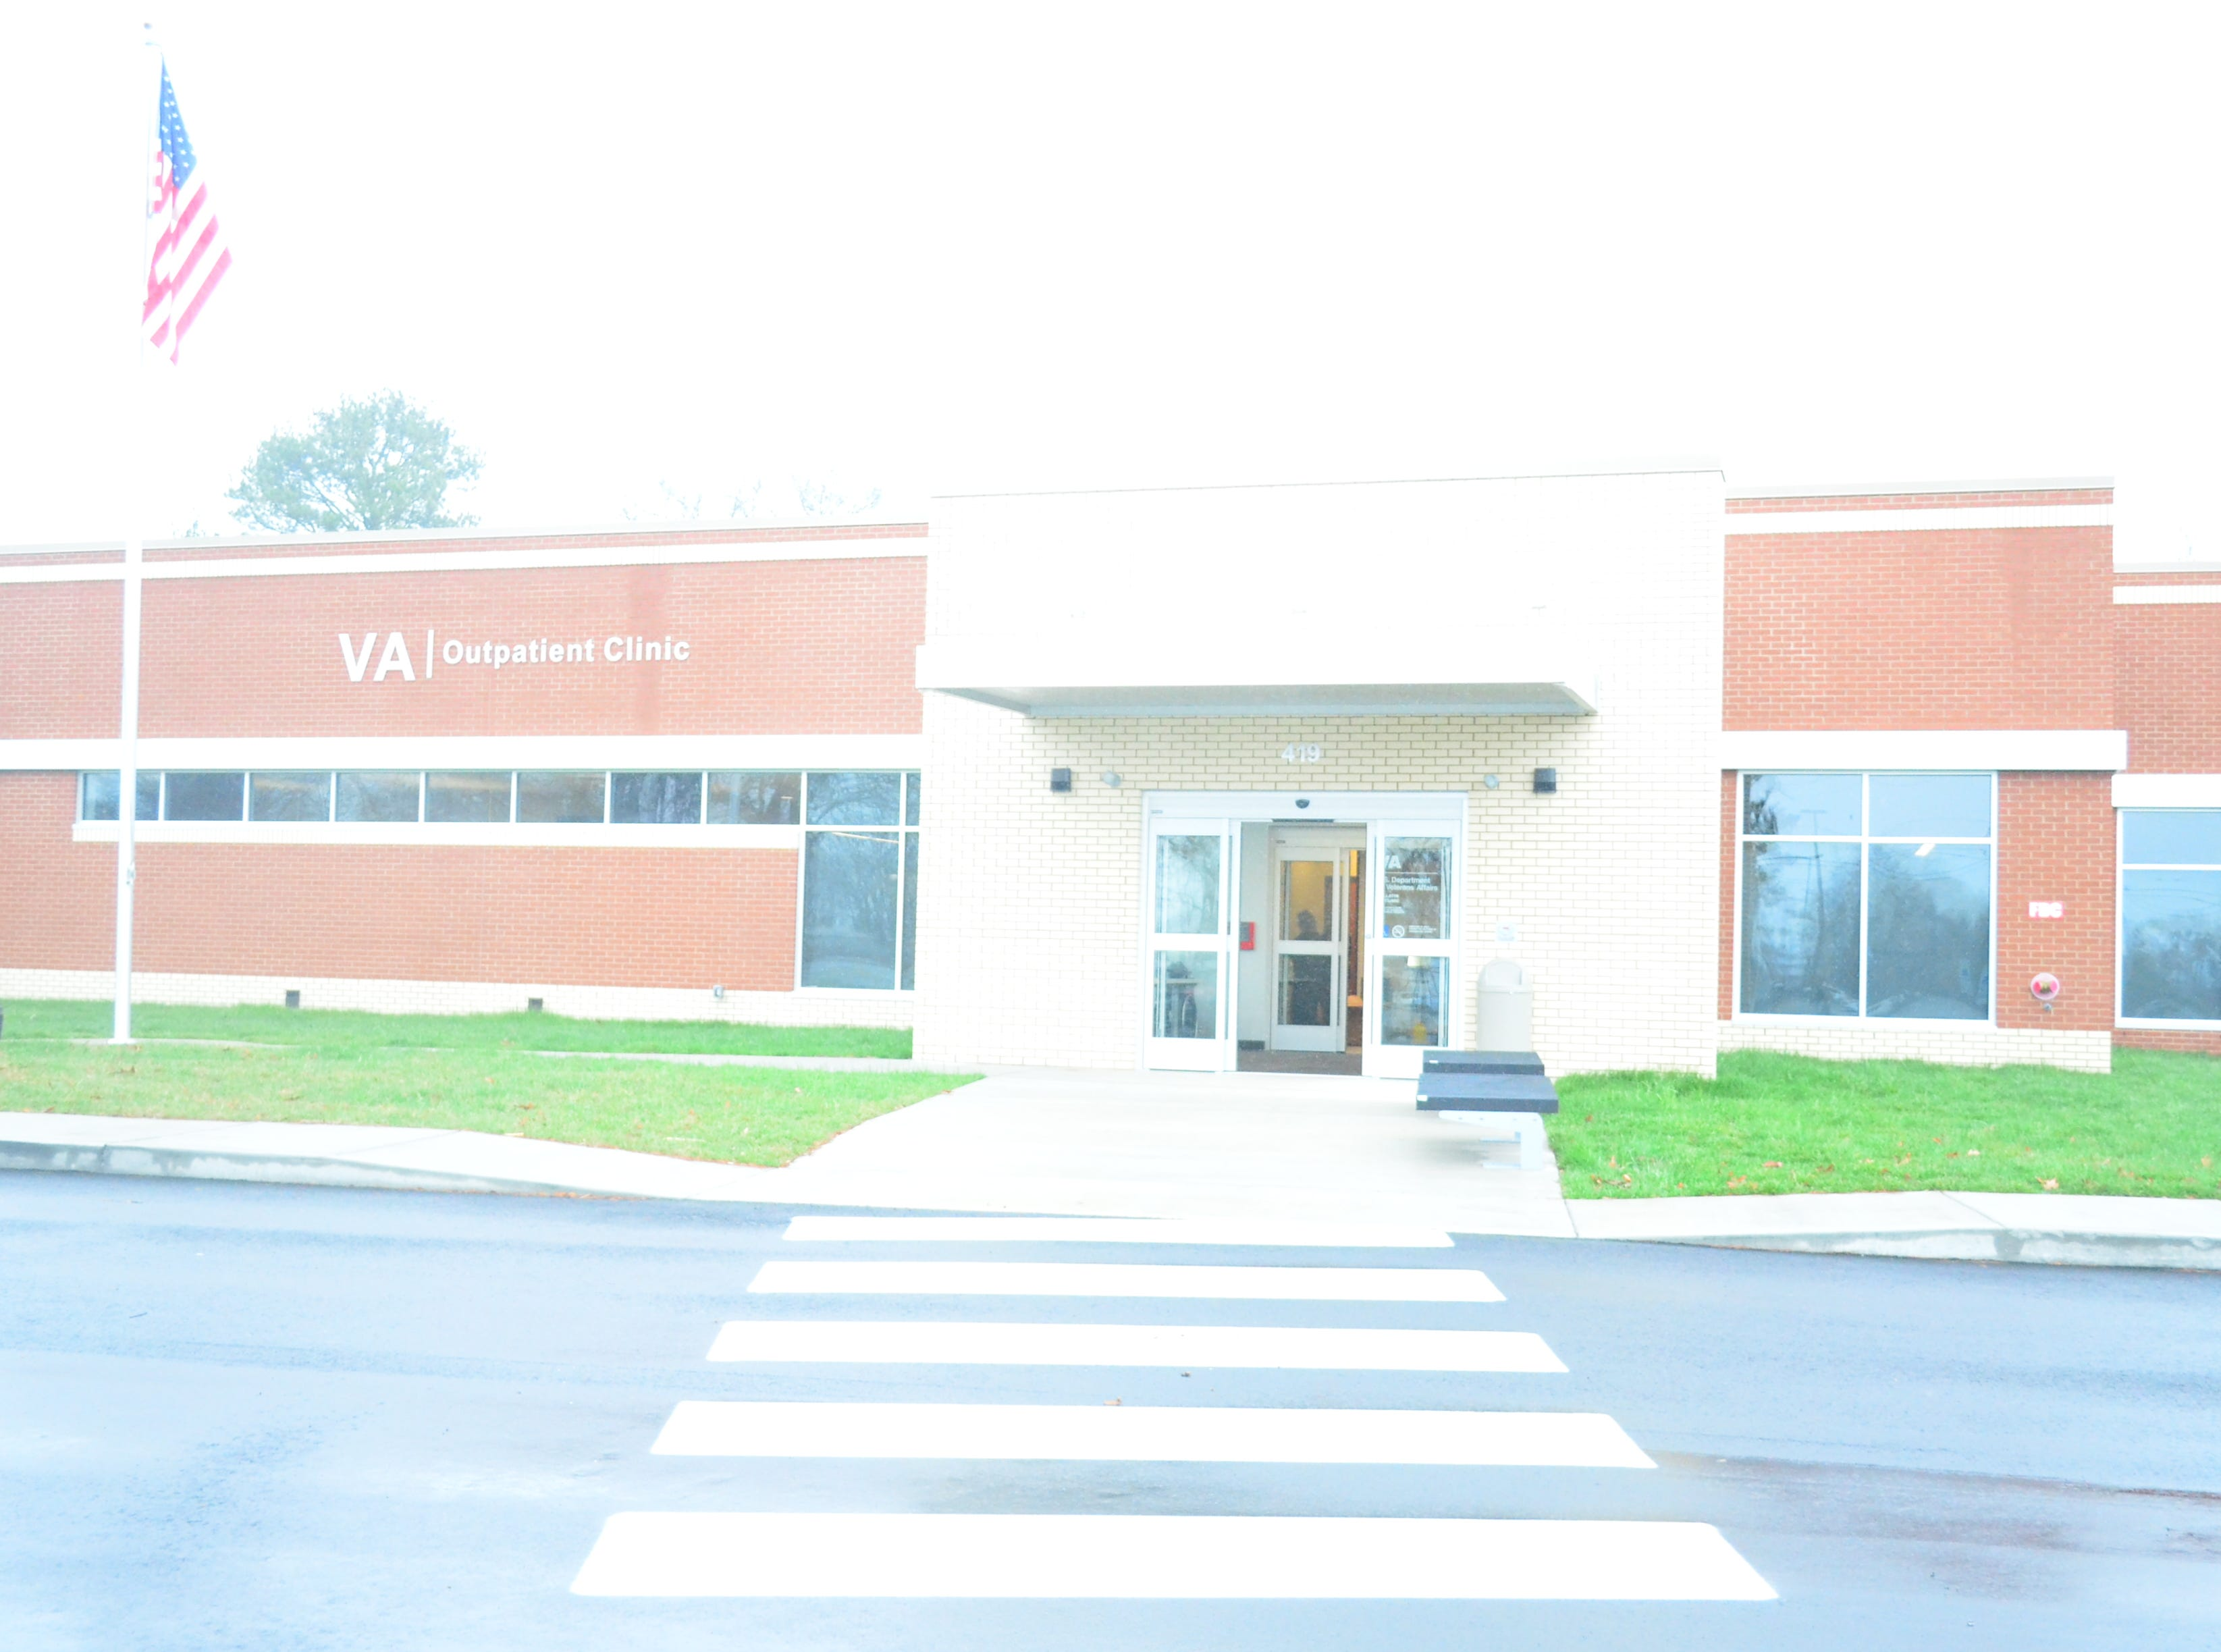 The Gallatin VA clinic will be able to provide services to more than 2,000 veterans.